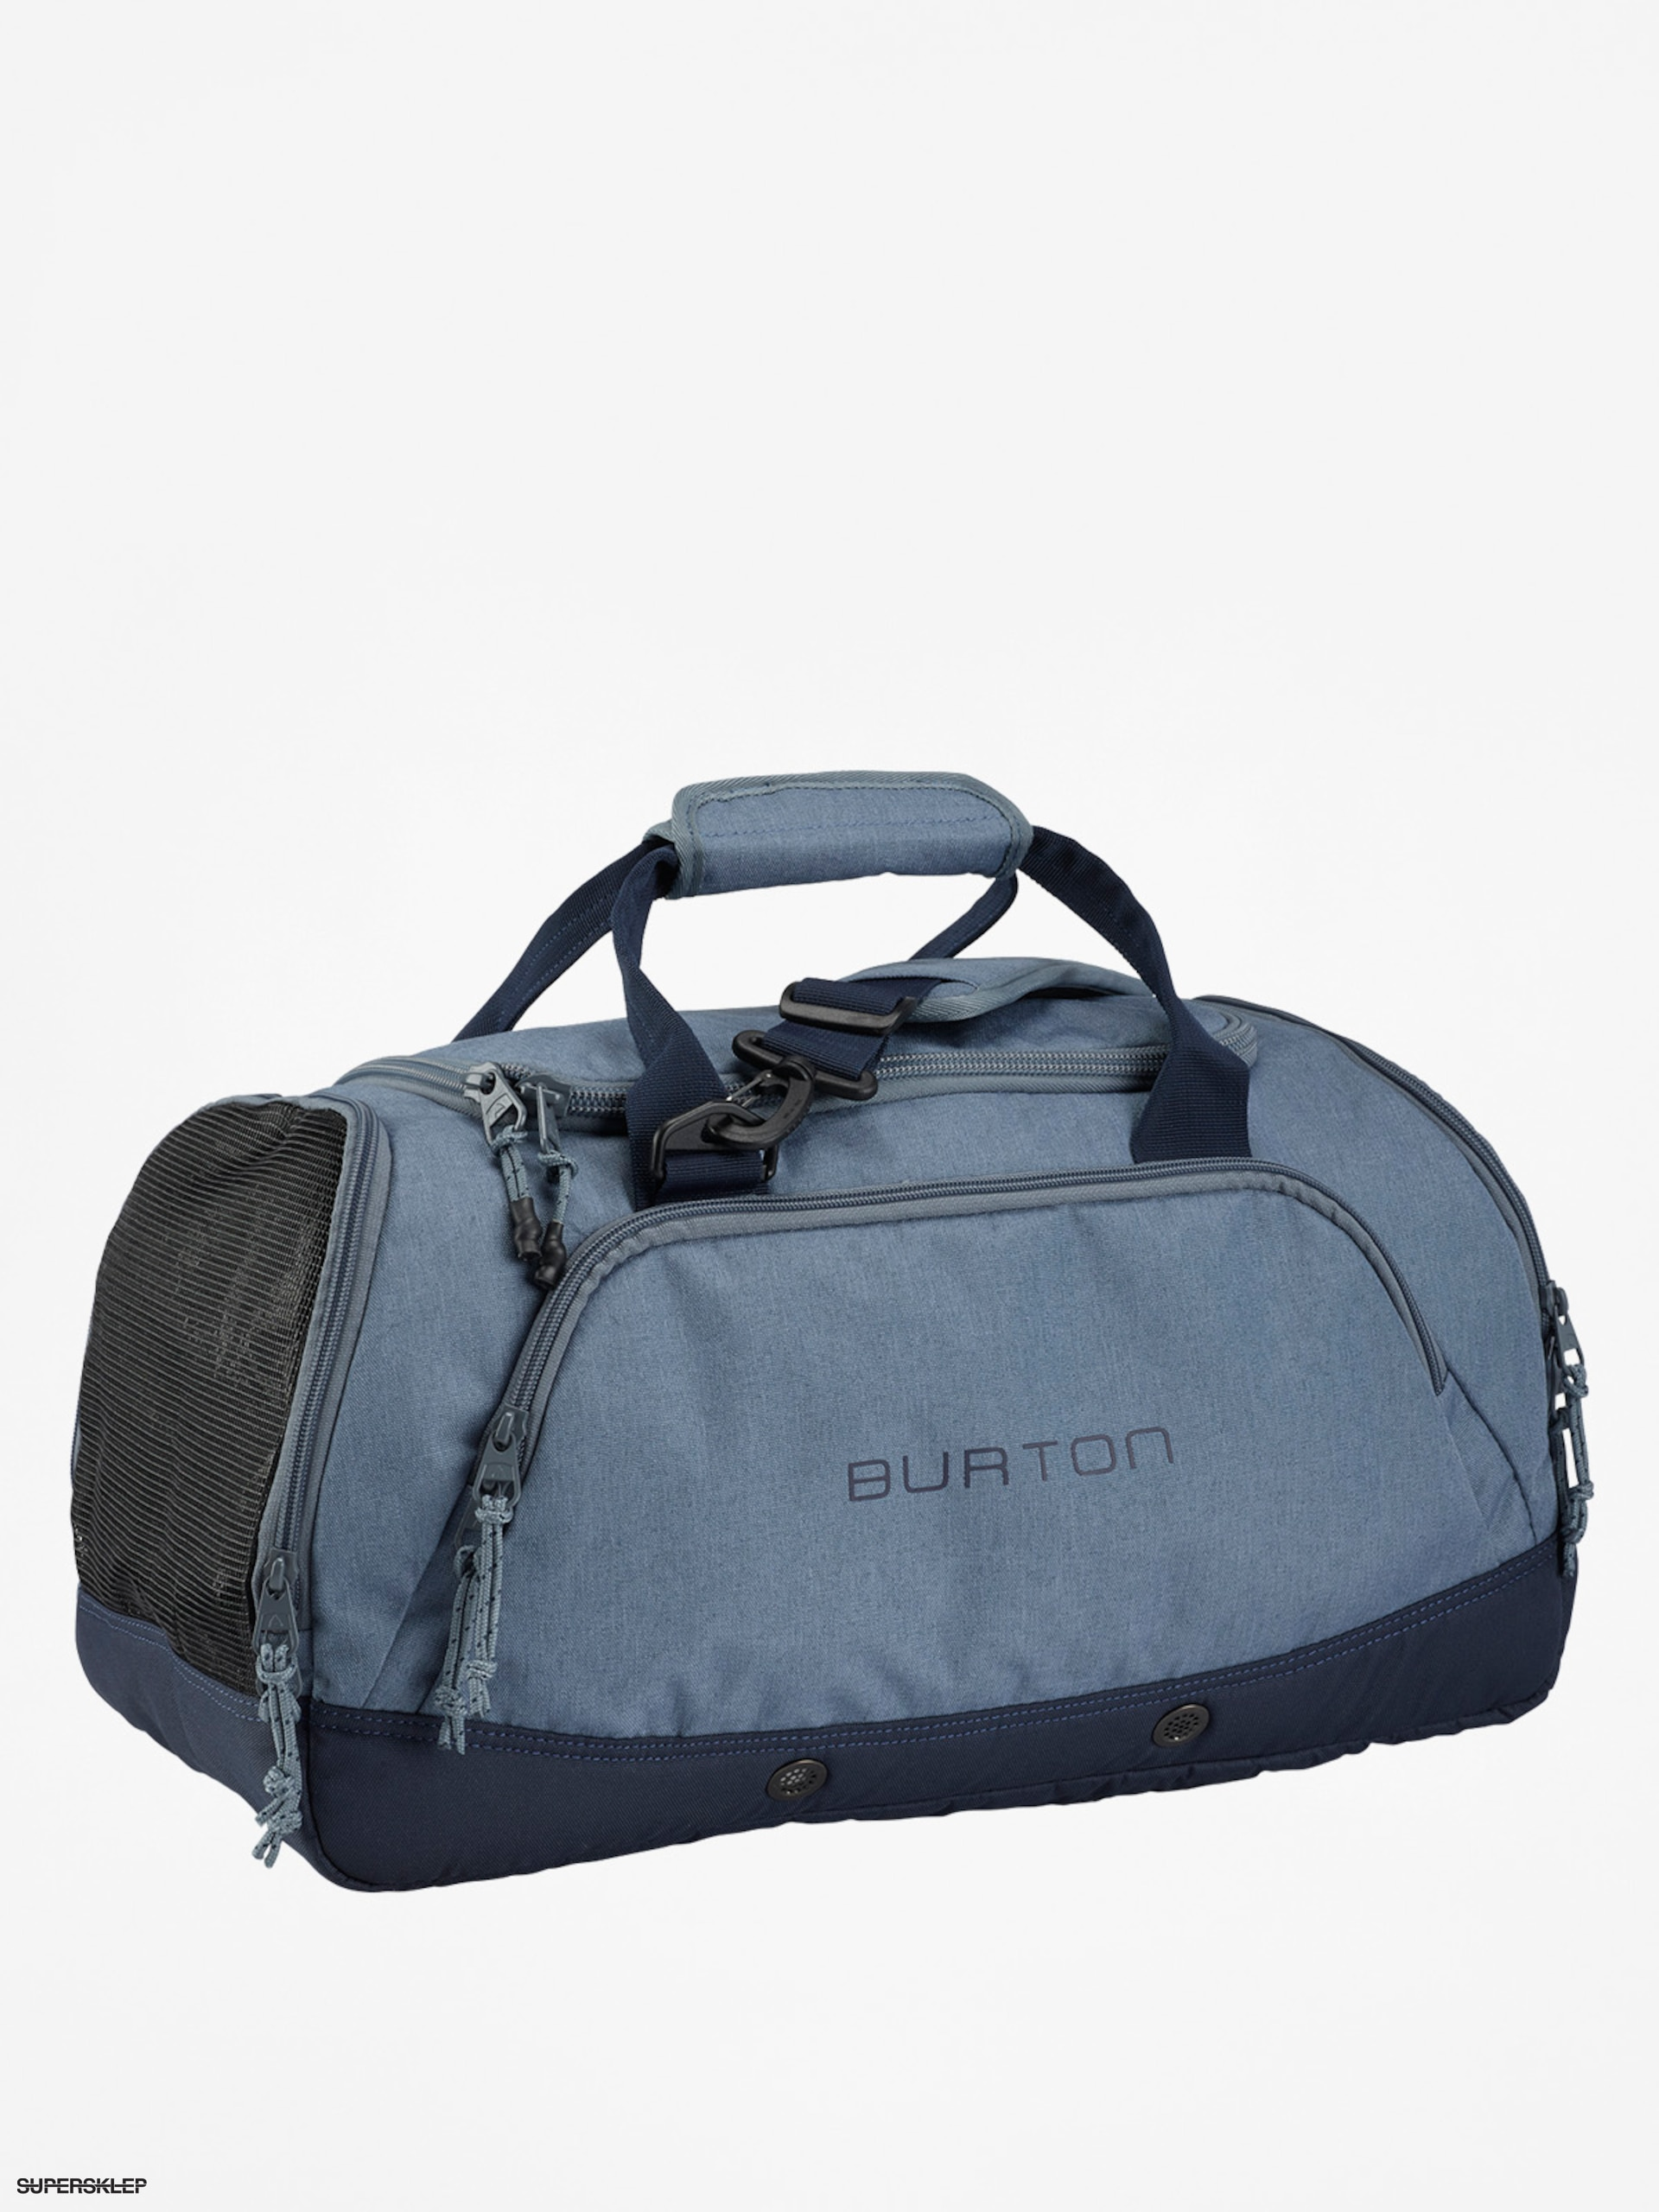 Torba Burton Boothaus Bag Md 2.0 (la sky heather)